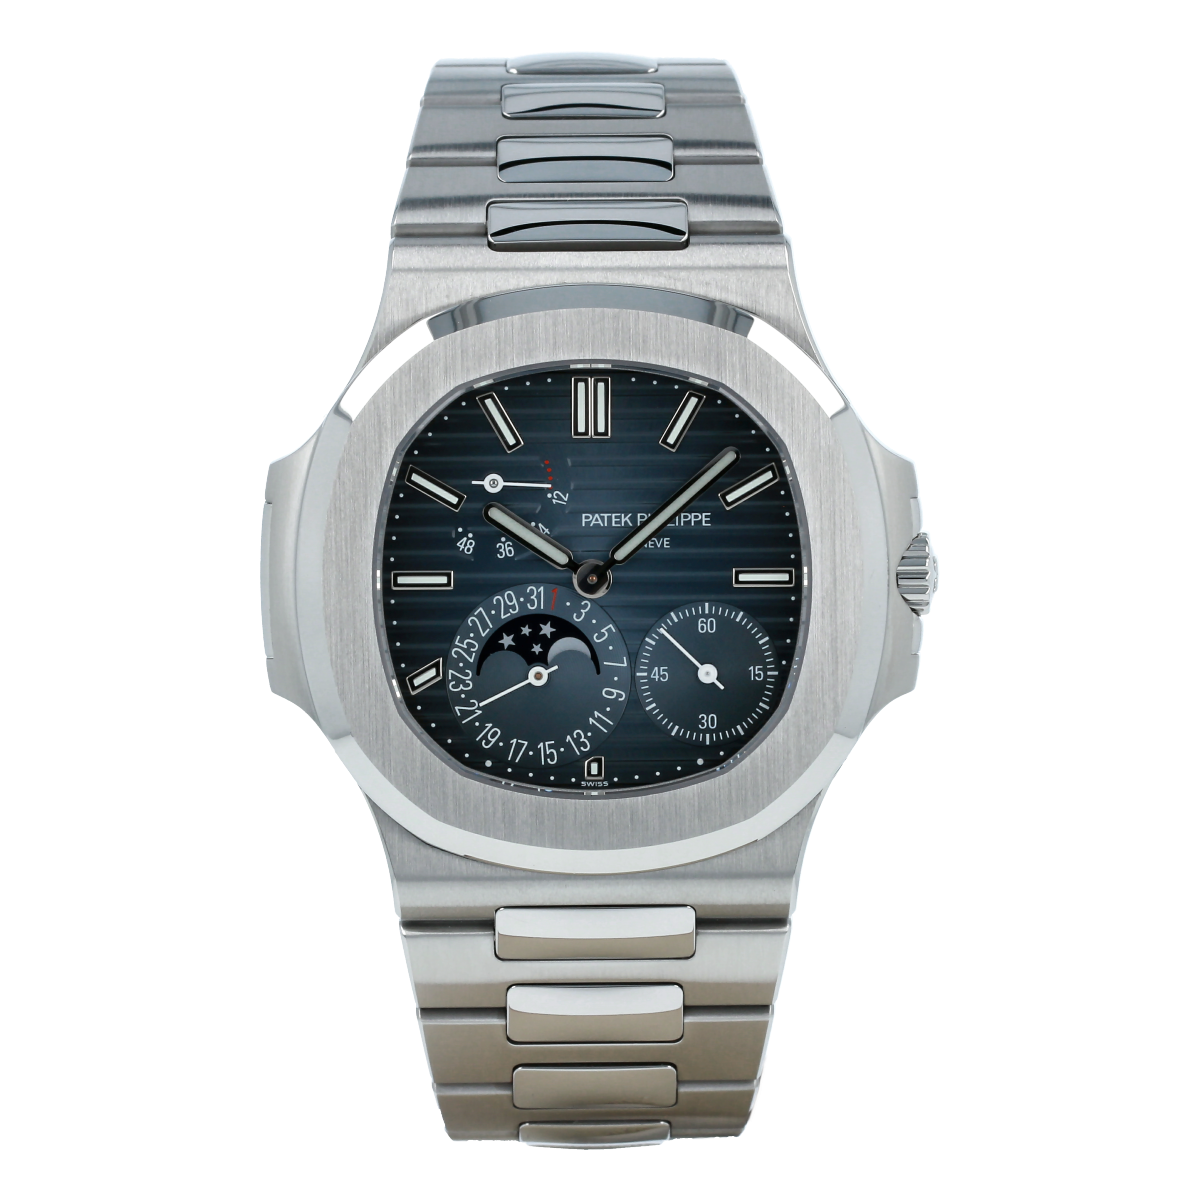 Patek Philippe Nautilus 5712/1A Moon Phase *Brand-New* | Buy pre-owned Patek Philippe watch